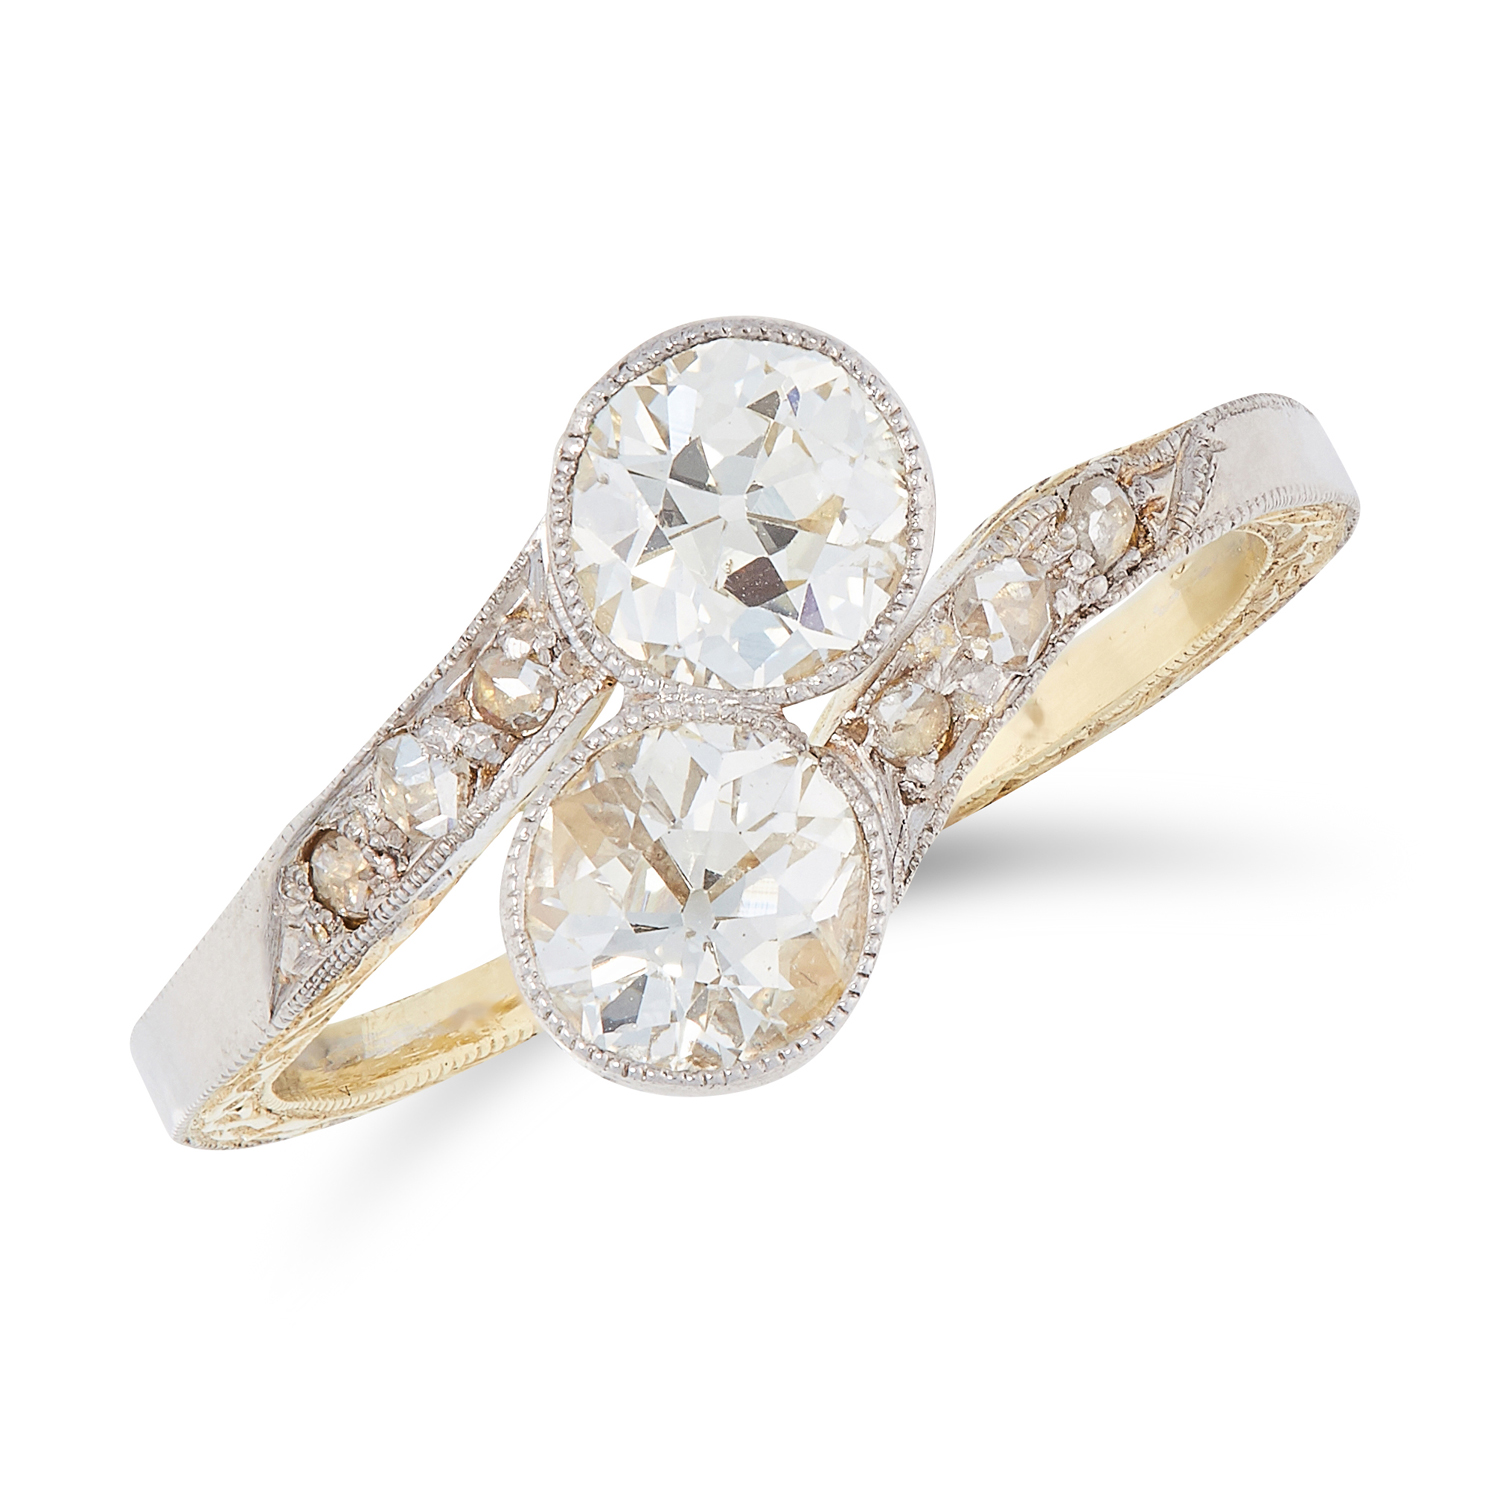 A DIAMOND CROSSOVER RING in yellow gold, set with two old round cut diamonds within a twisted